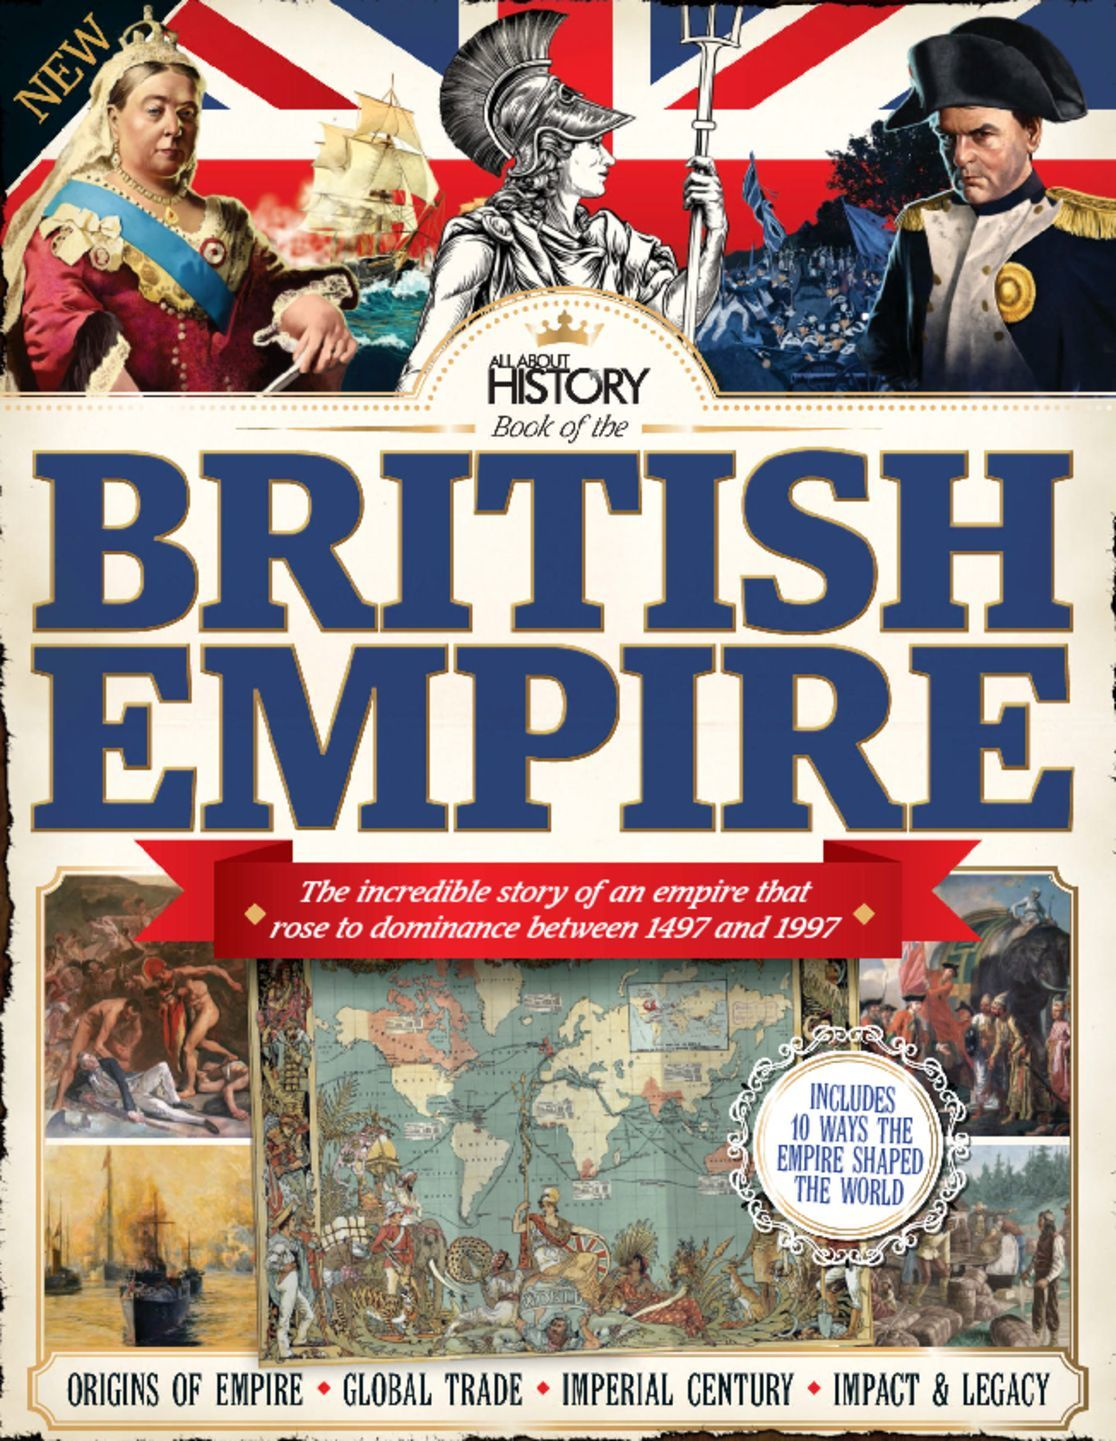 the history of the british empire The british empire comprised the dominions, colonies, protectorates, mandates and other territories ruled or administered by the united kingdom and its predecessor states it originated with the overseas possessions and trading posts established by england between the late 16th and early 18th centuries at its height, it.